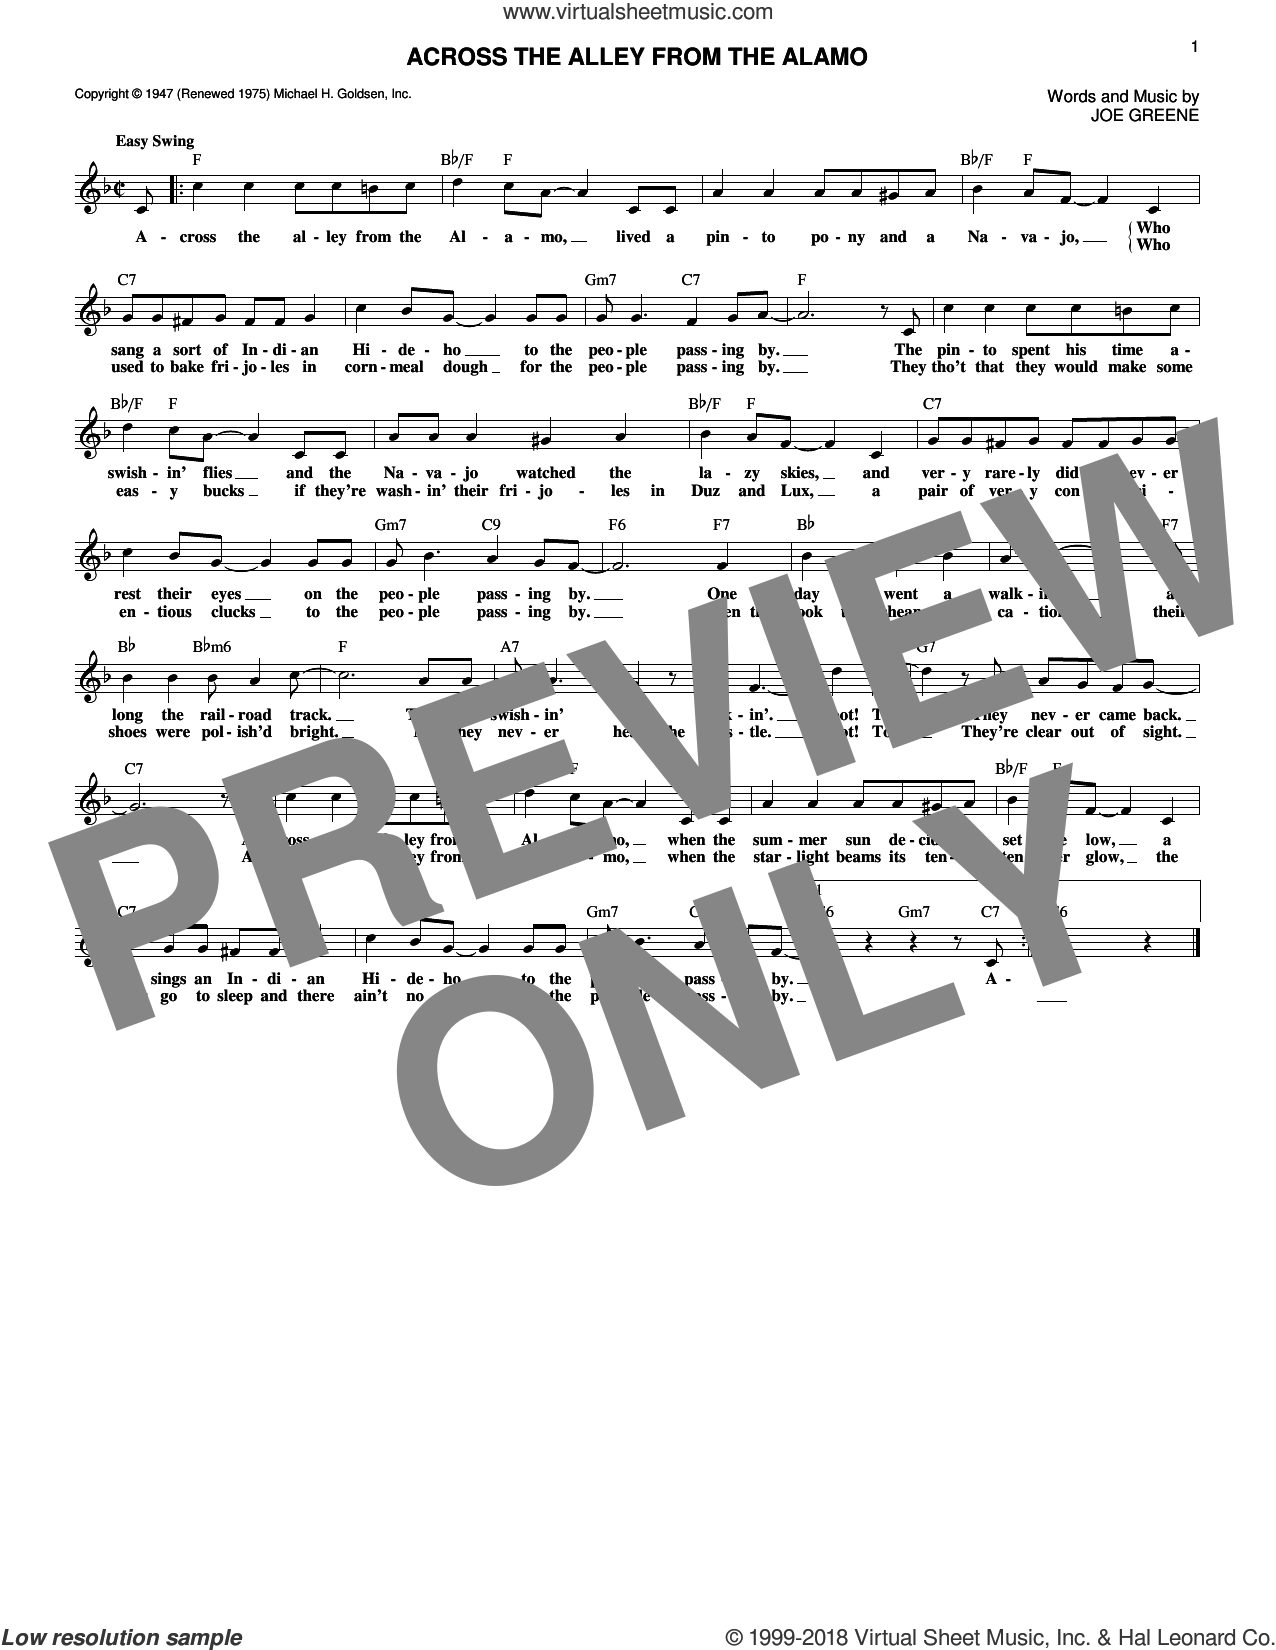 Across The Alley From The Alamo sheet music for voice and other instruments (fake book) by Joe Greene